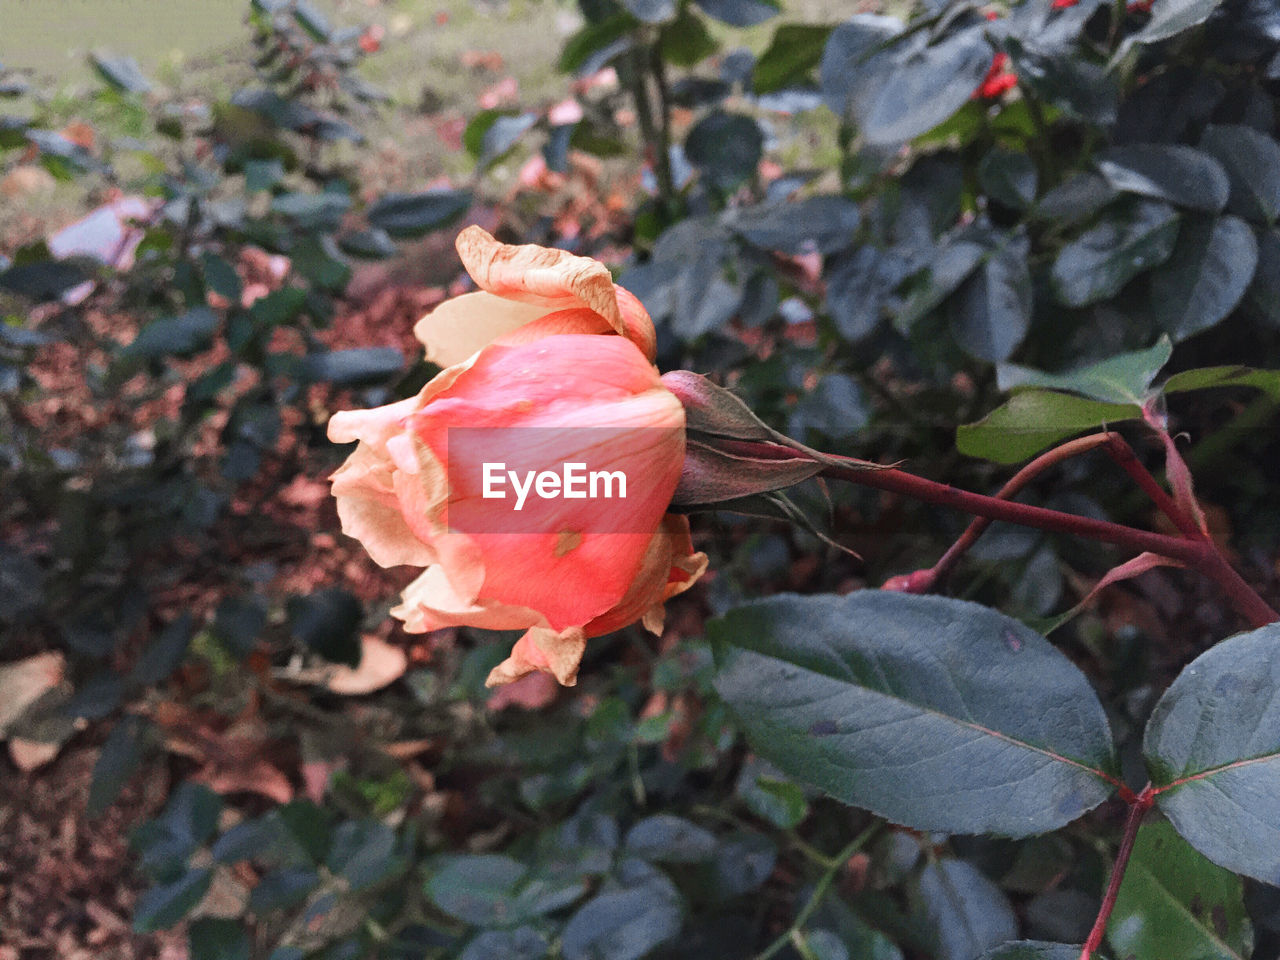 flower, petal, nature, growth, fragility, plant, beauty in nature, flower head, leaf, rose - flower, no people, blooming, outdoors, freshness, day, close-up